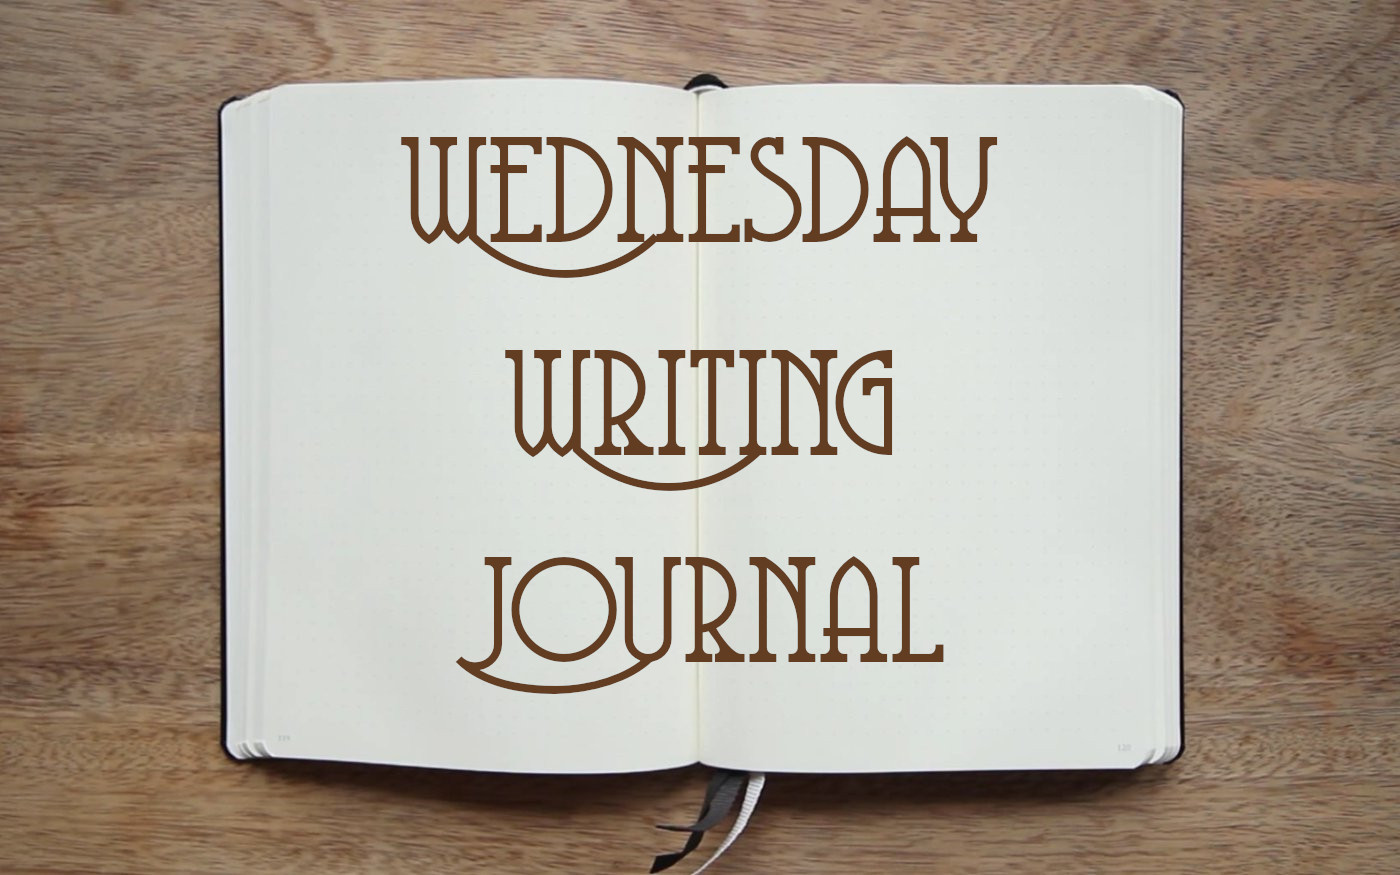 Wednesday Writing Journal: March 11, 2020